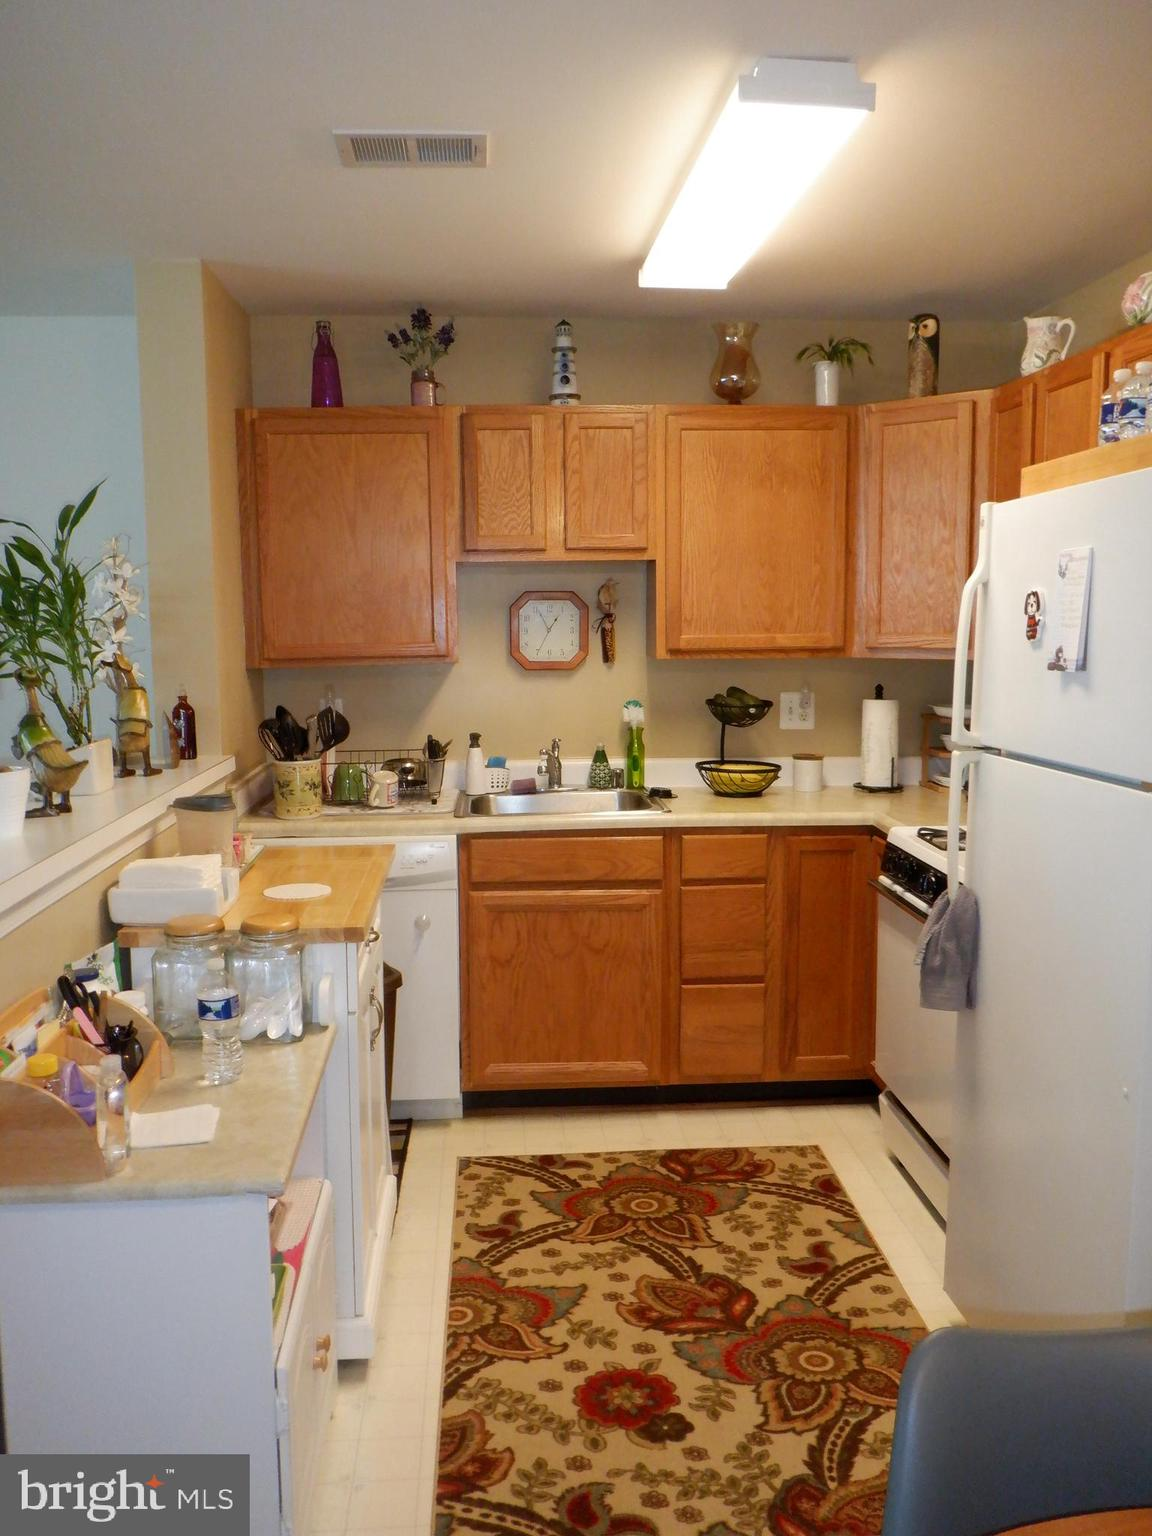 Well maintained, 2 bedroom 2 bath condo on the ground floor. No steps to navigate. Excellent tenant